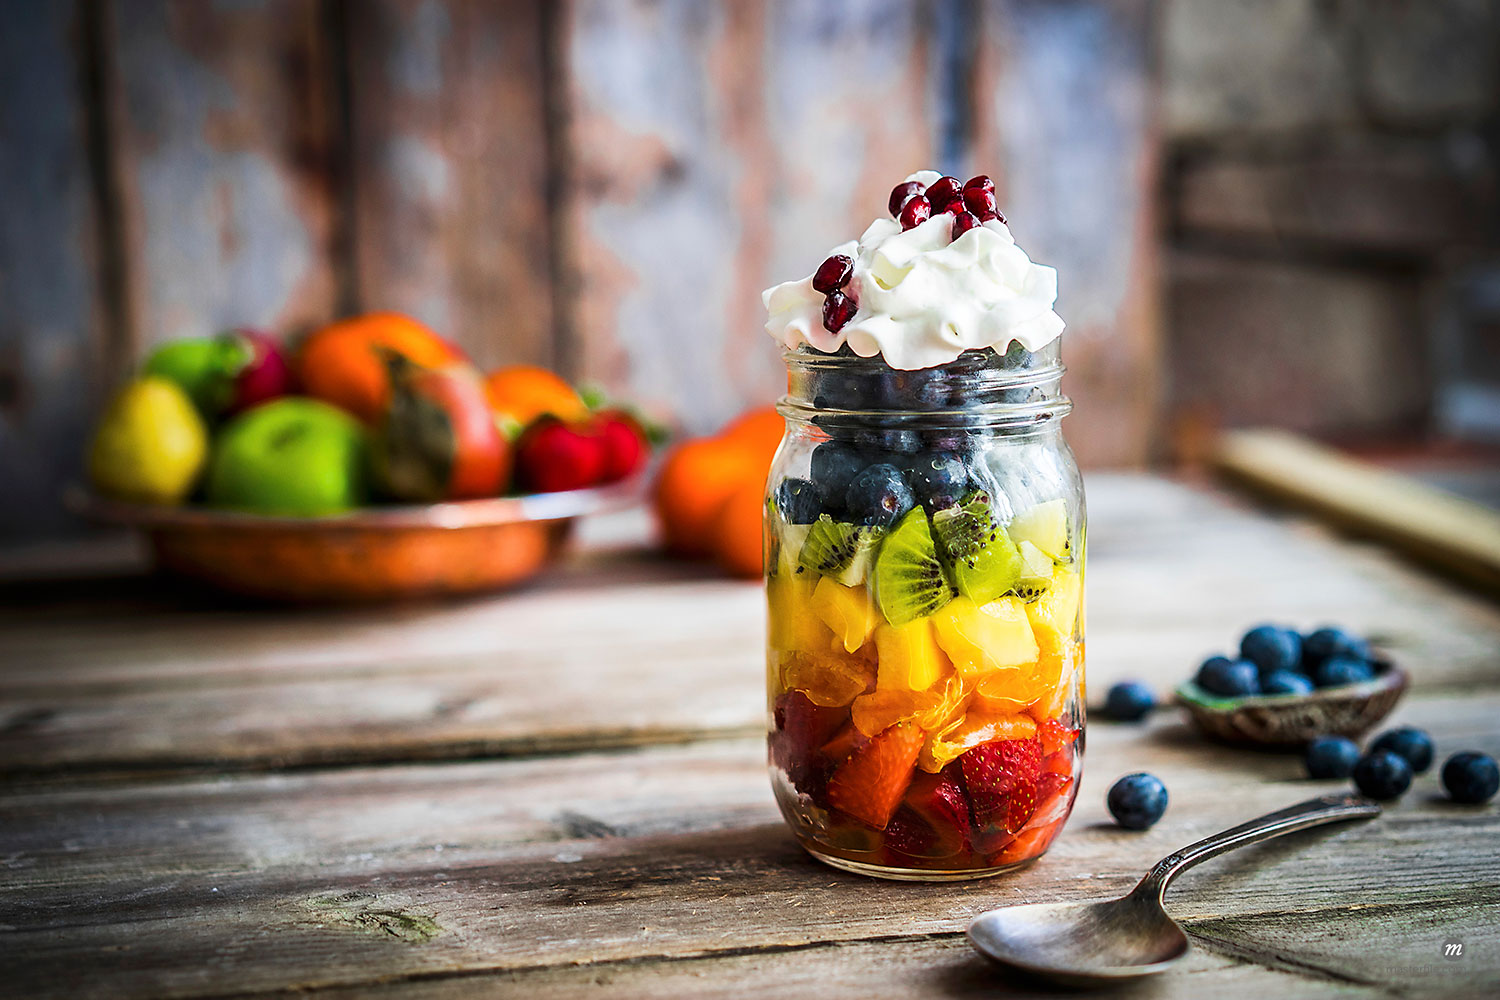 A rainbow fruit salad in a mason jar topped with cream and pomegranate seeds on rustic table  © Masterfile